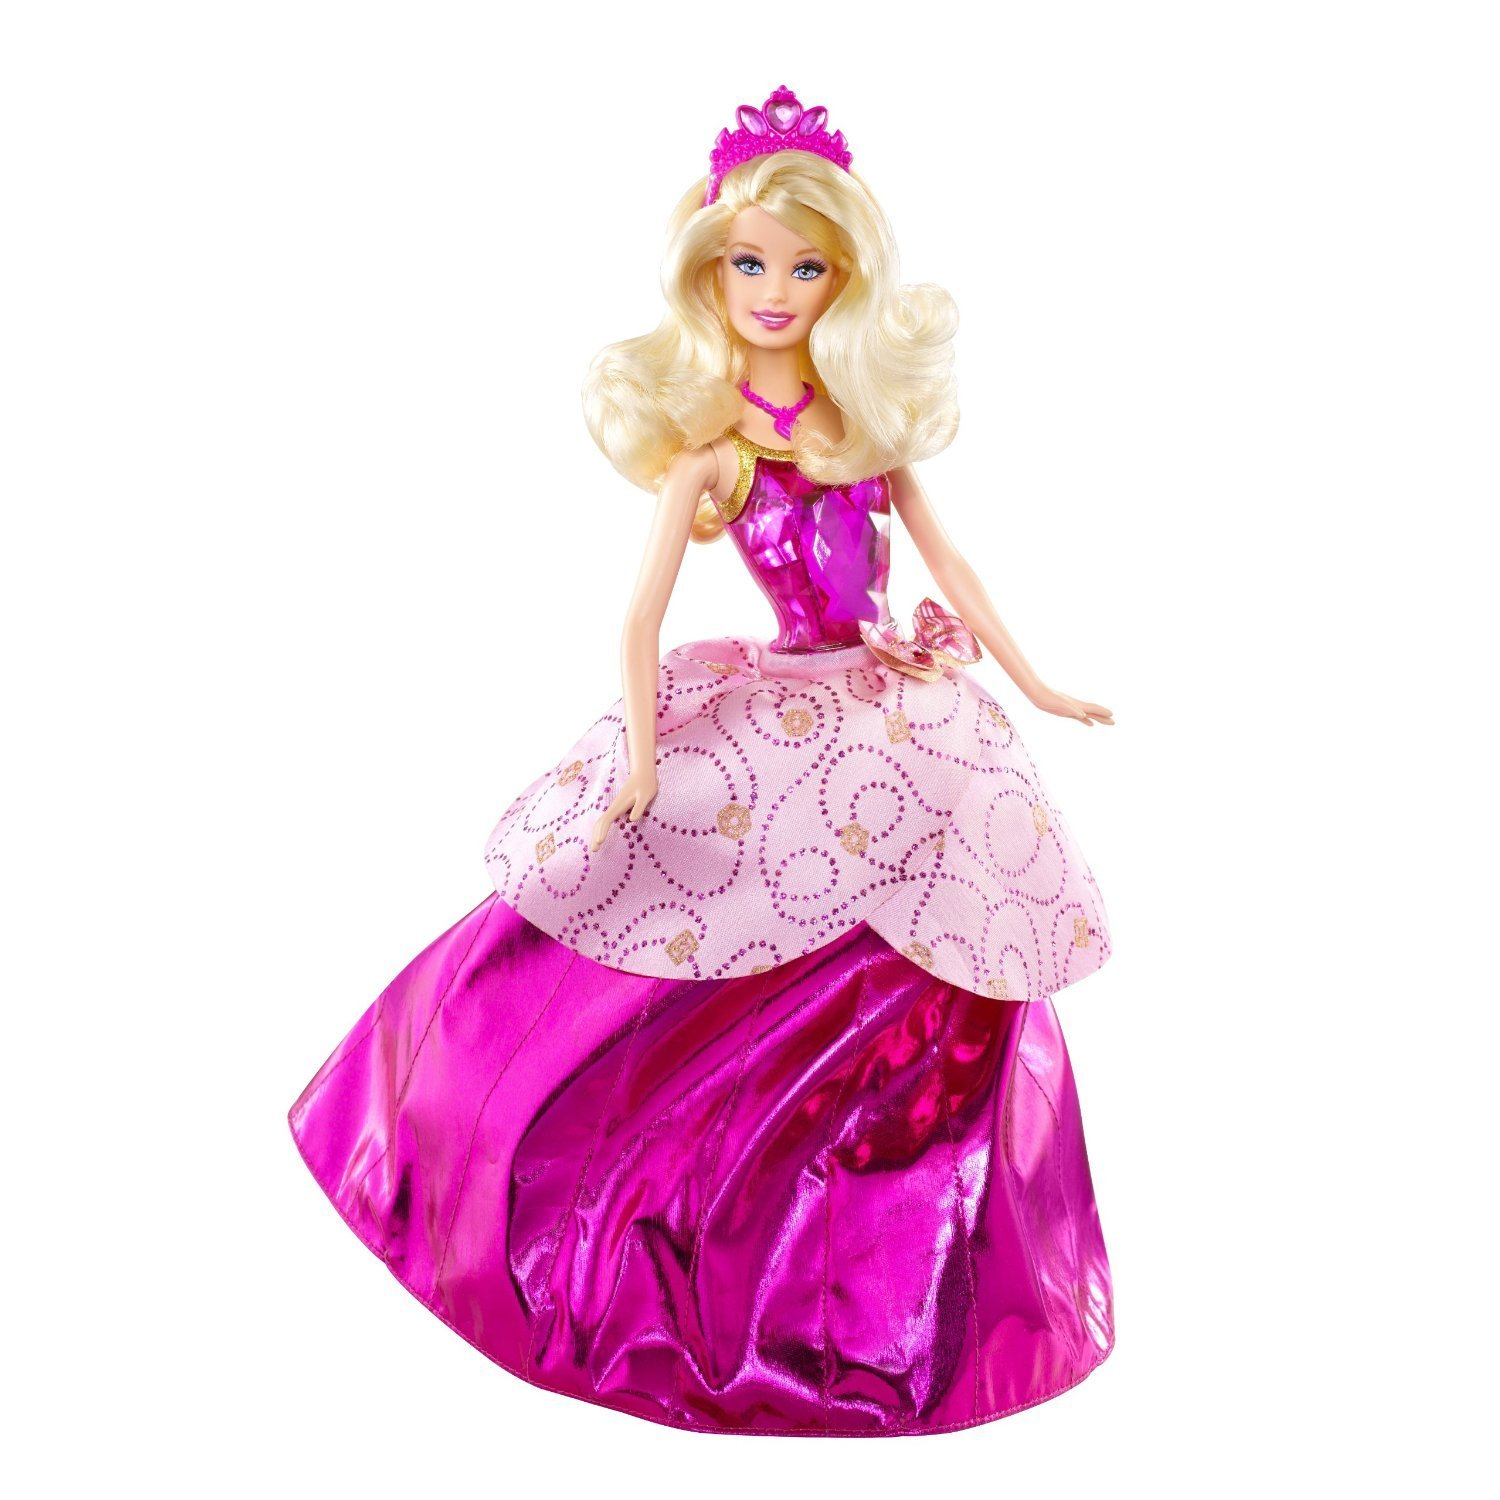 Barbie Movies Barbie: PCS - Blair - 3-in-1 Transforming Doll (LARGE